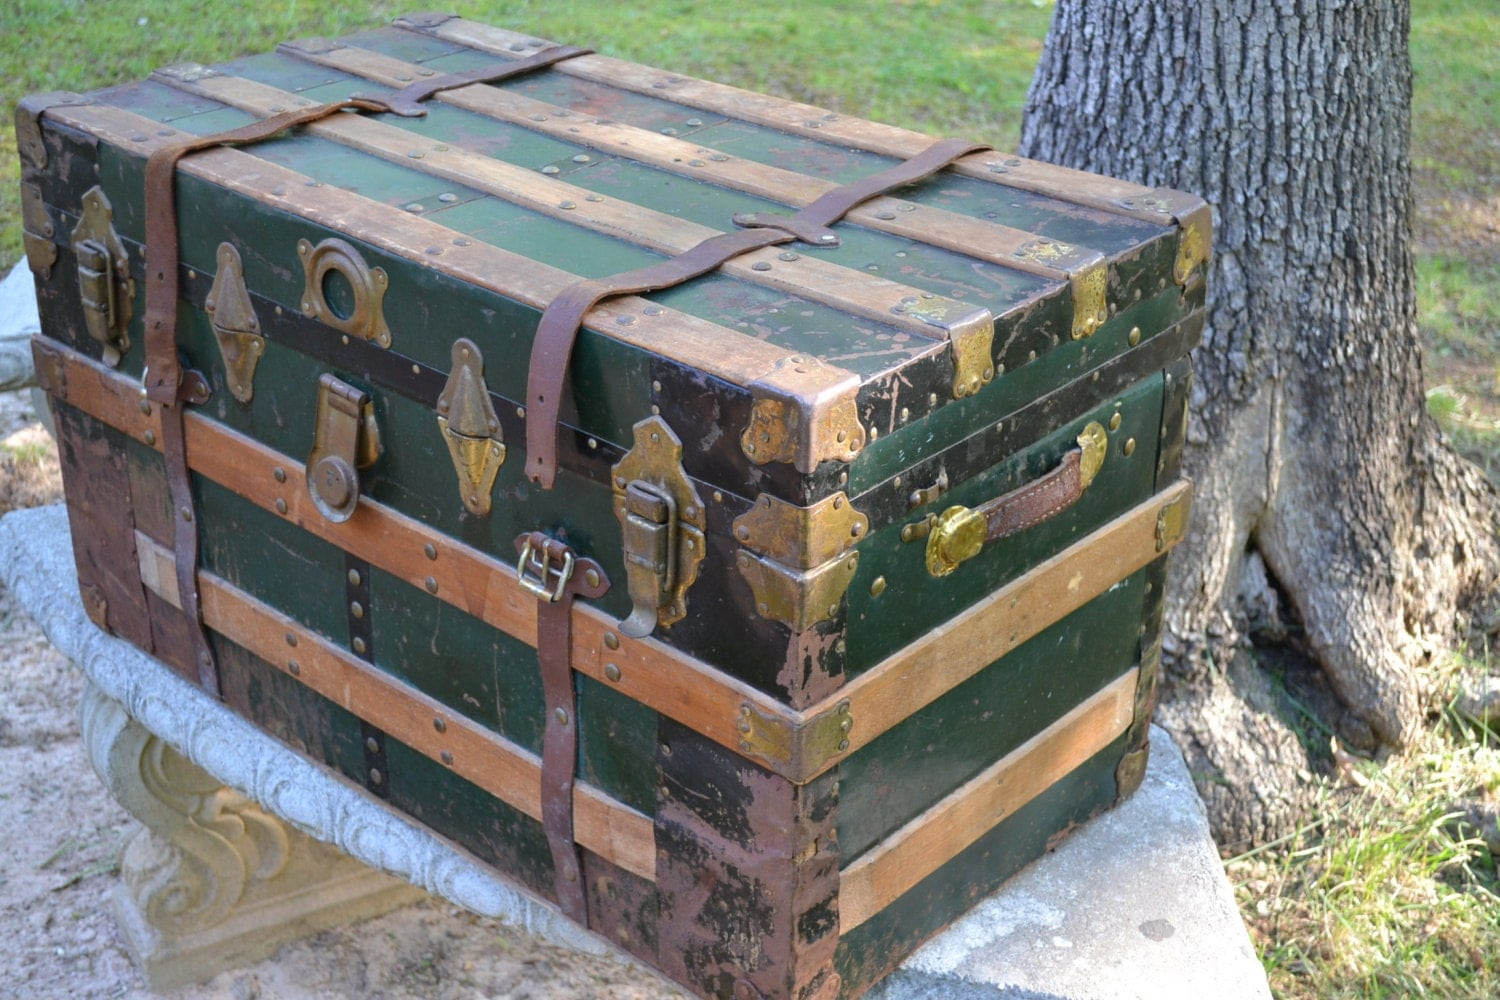 Antique Steamer Trunk Metal Covered Wood Green Wood Trim : ilfullxfull600027017mdne Retro <strong>L-Desk</strong> from etsy.com size 1500 x 1000 jpeg 470kB